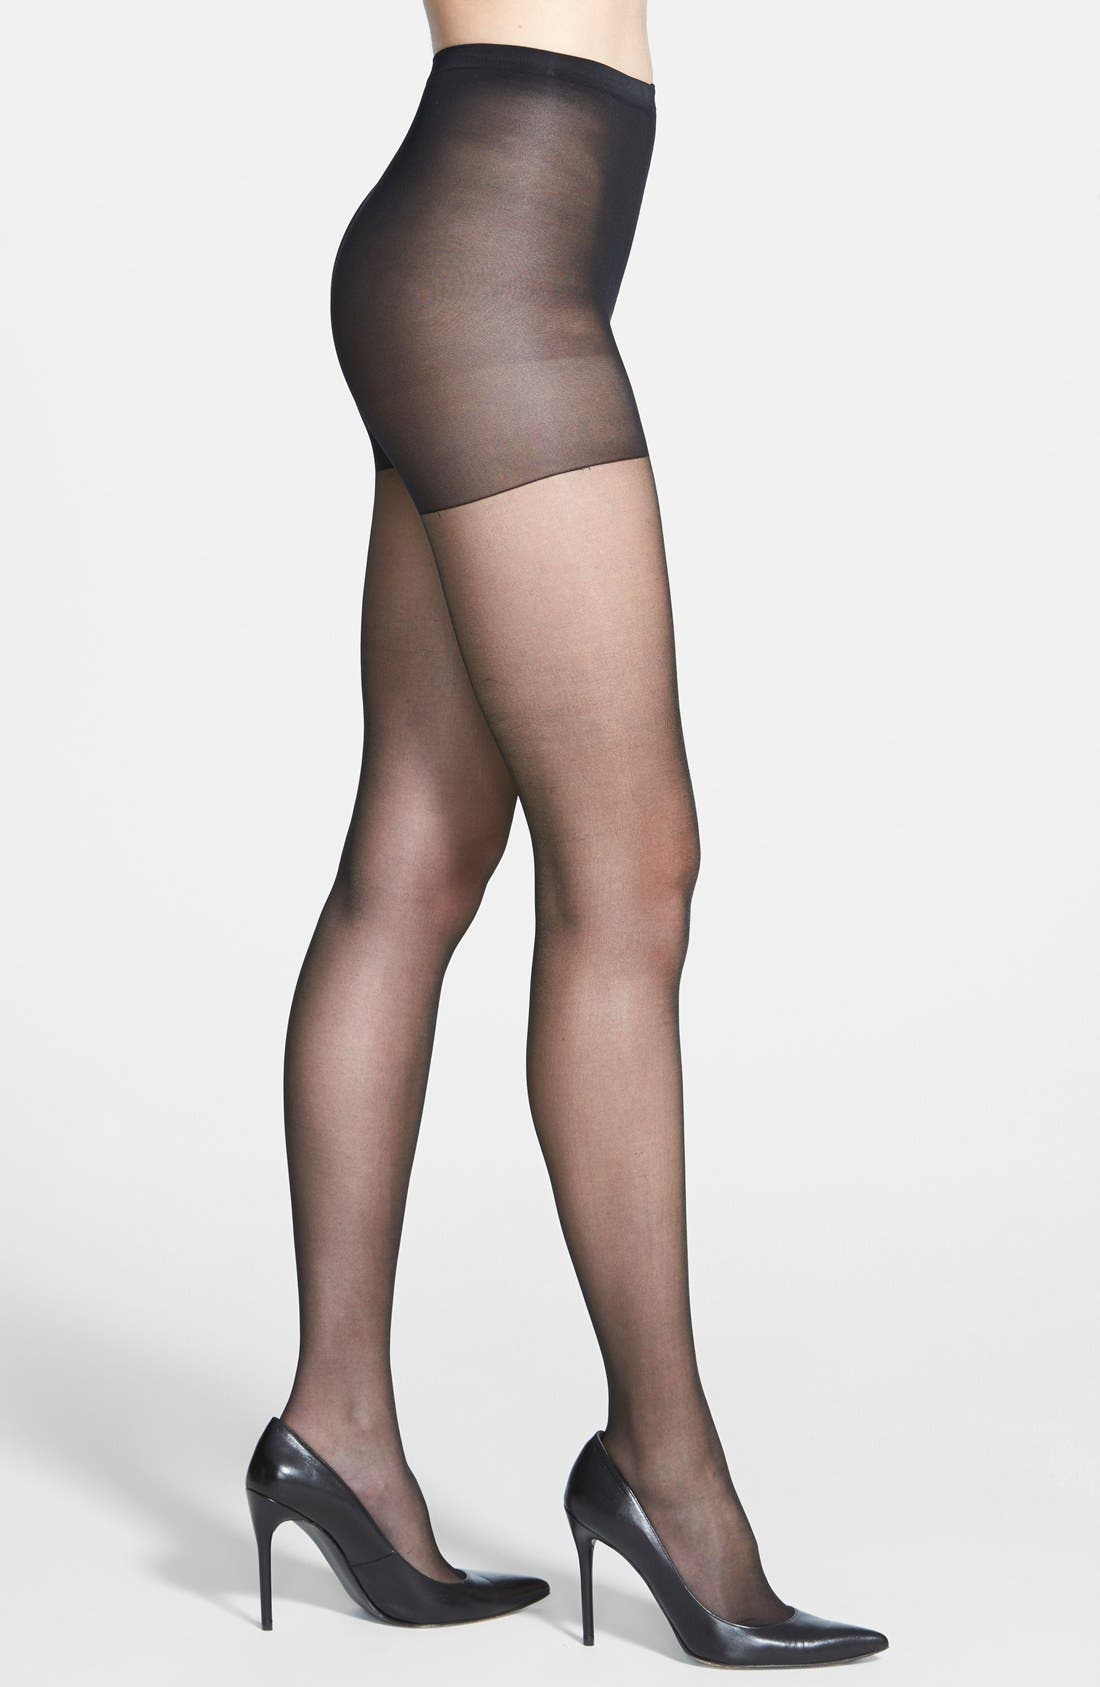 Alternate Image 1 Selected - Calvin Klein Shimmer Sheer Control Top Pantyhose